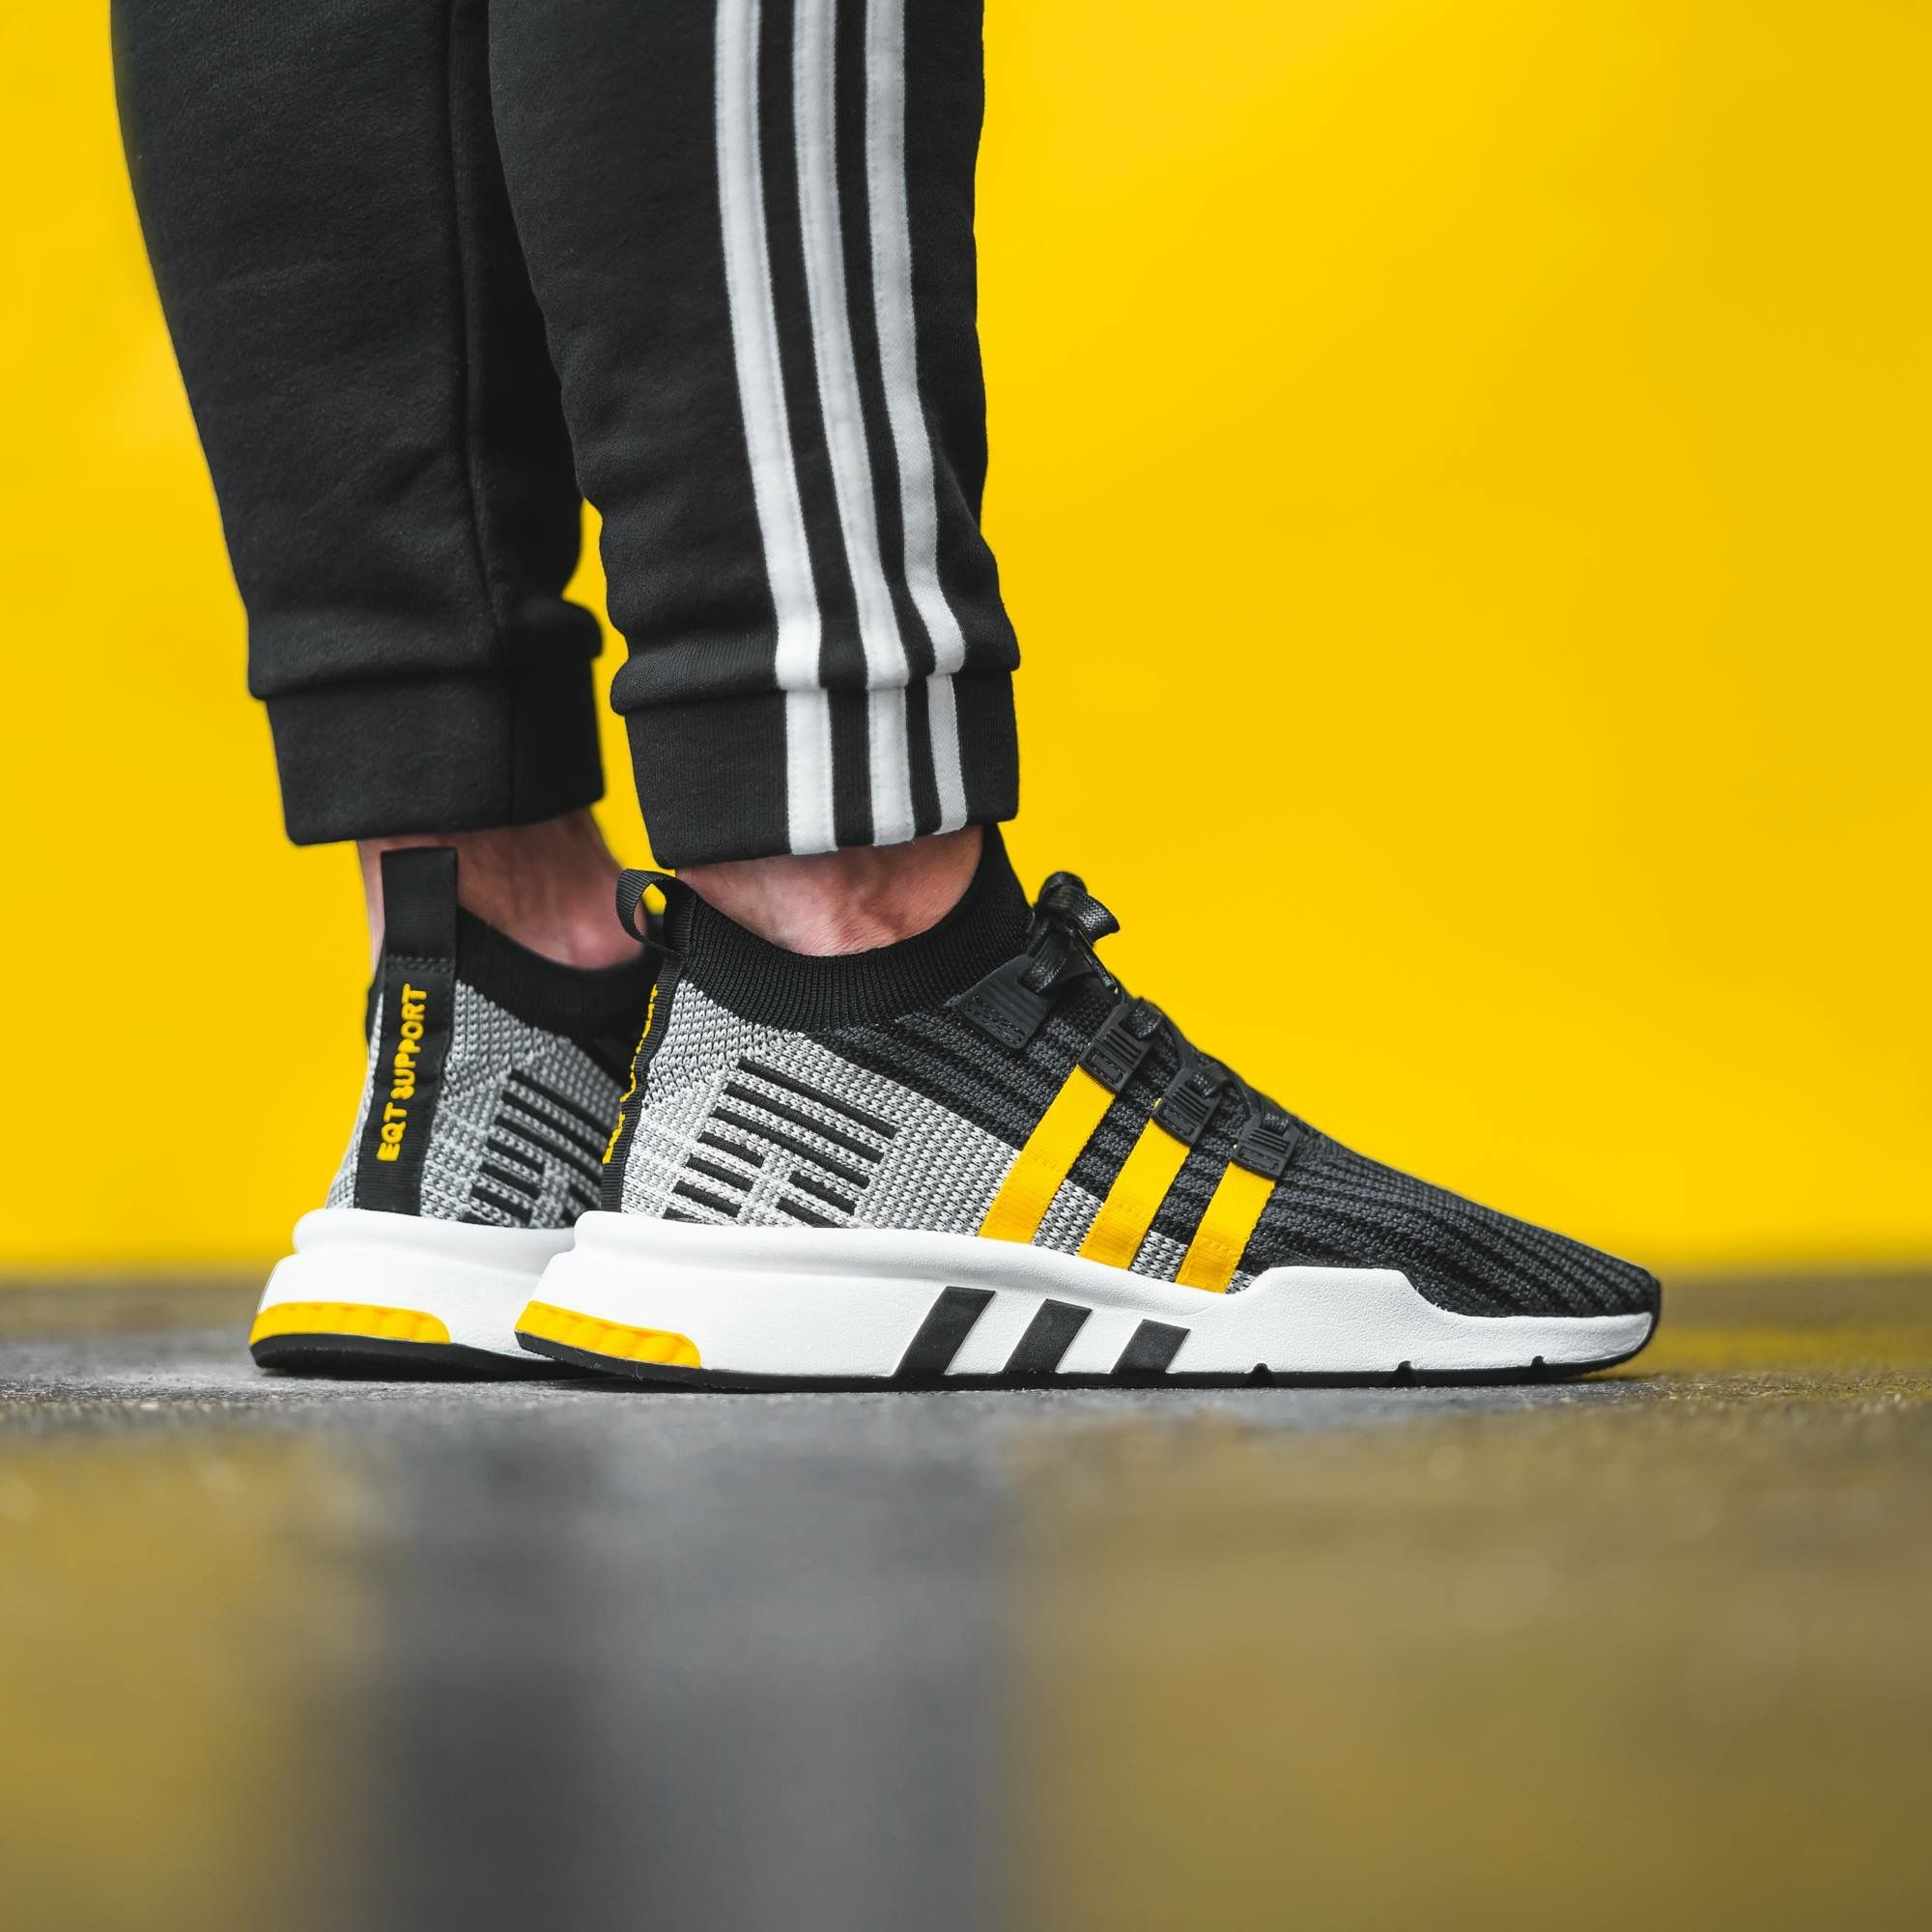 brand new 1e126 6691a adidas eqt support mid adv yellow